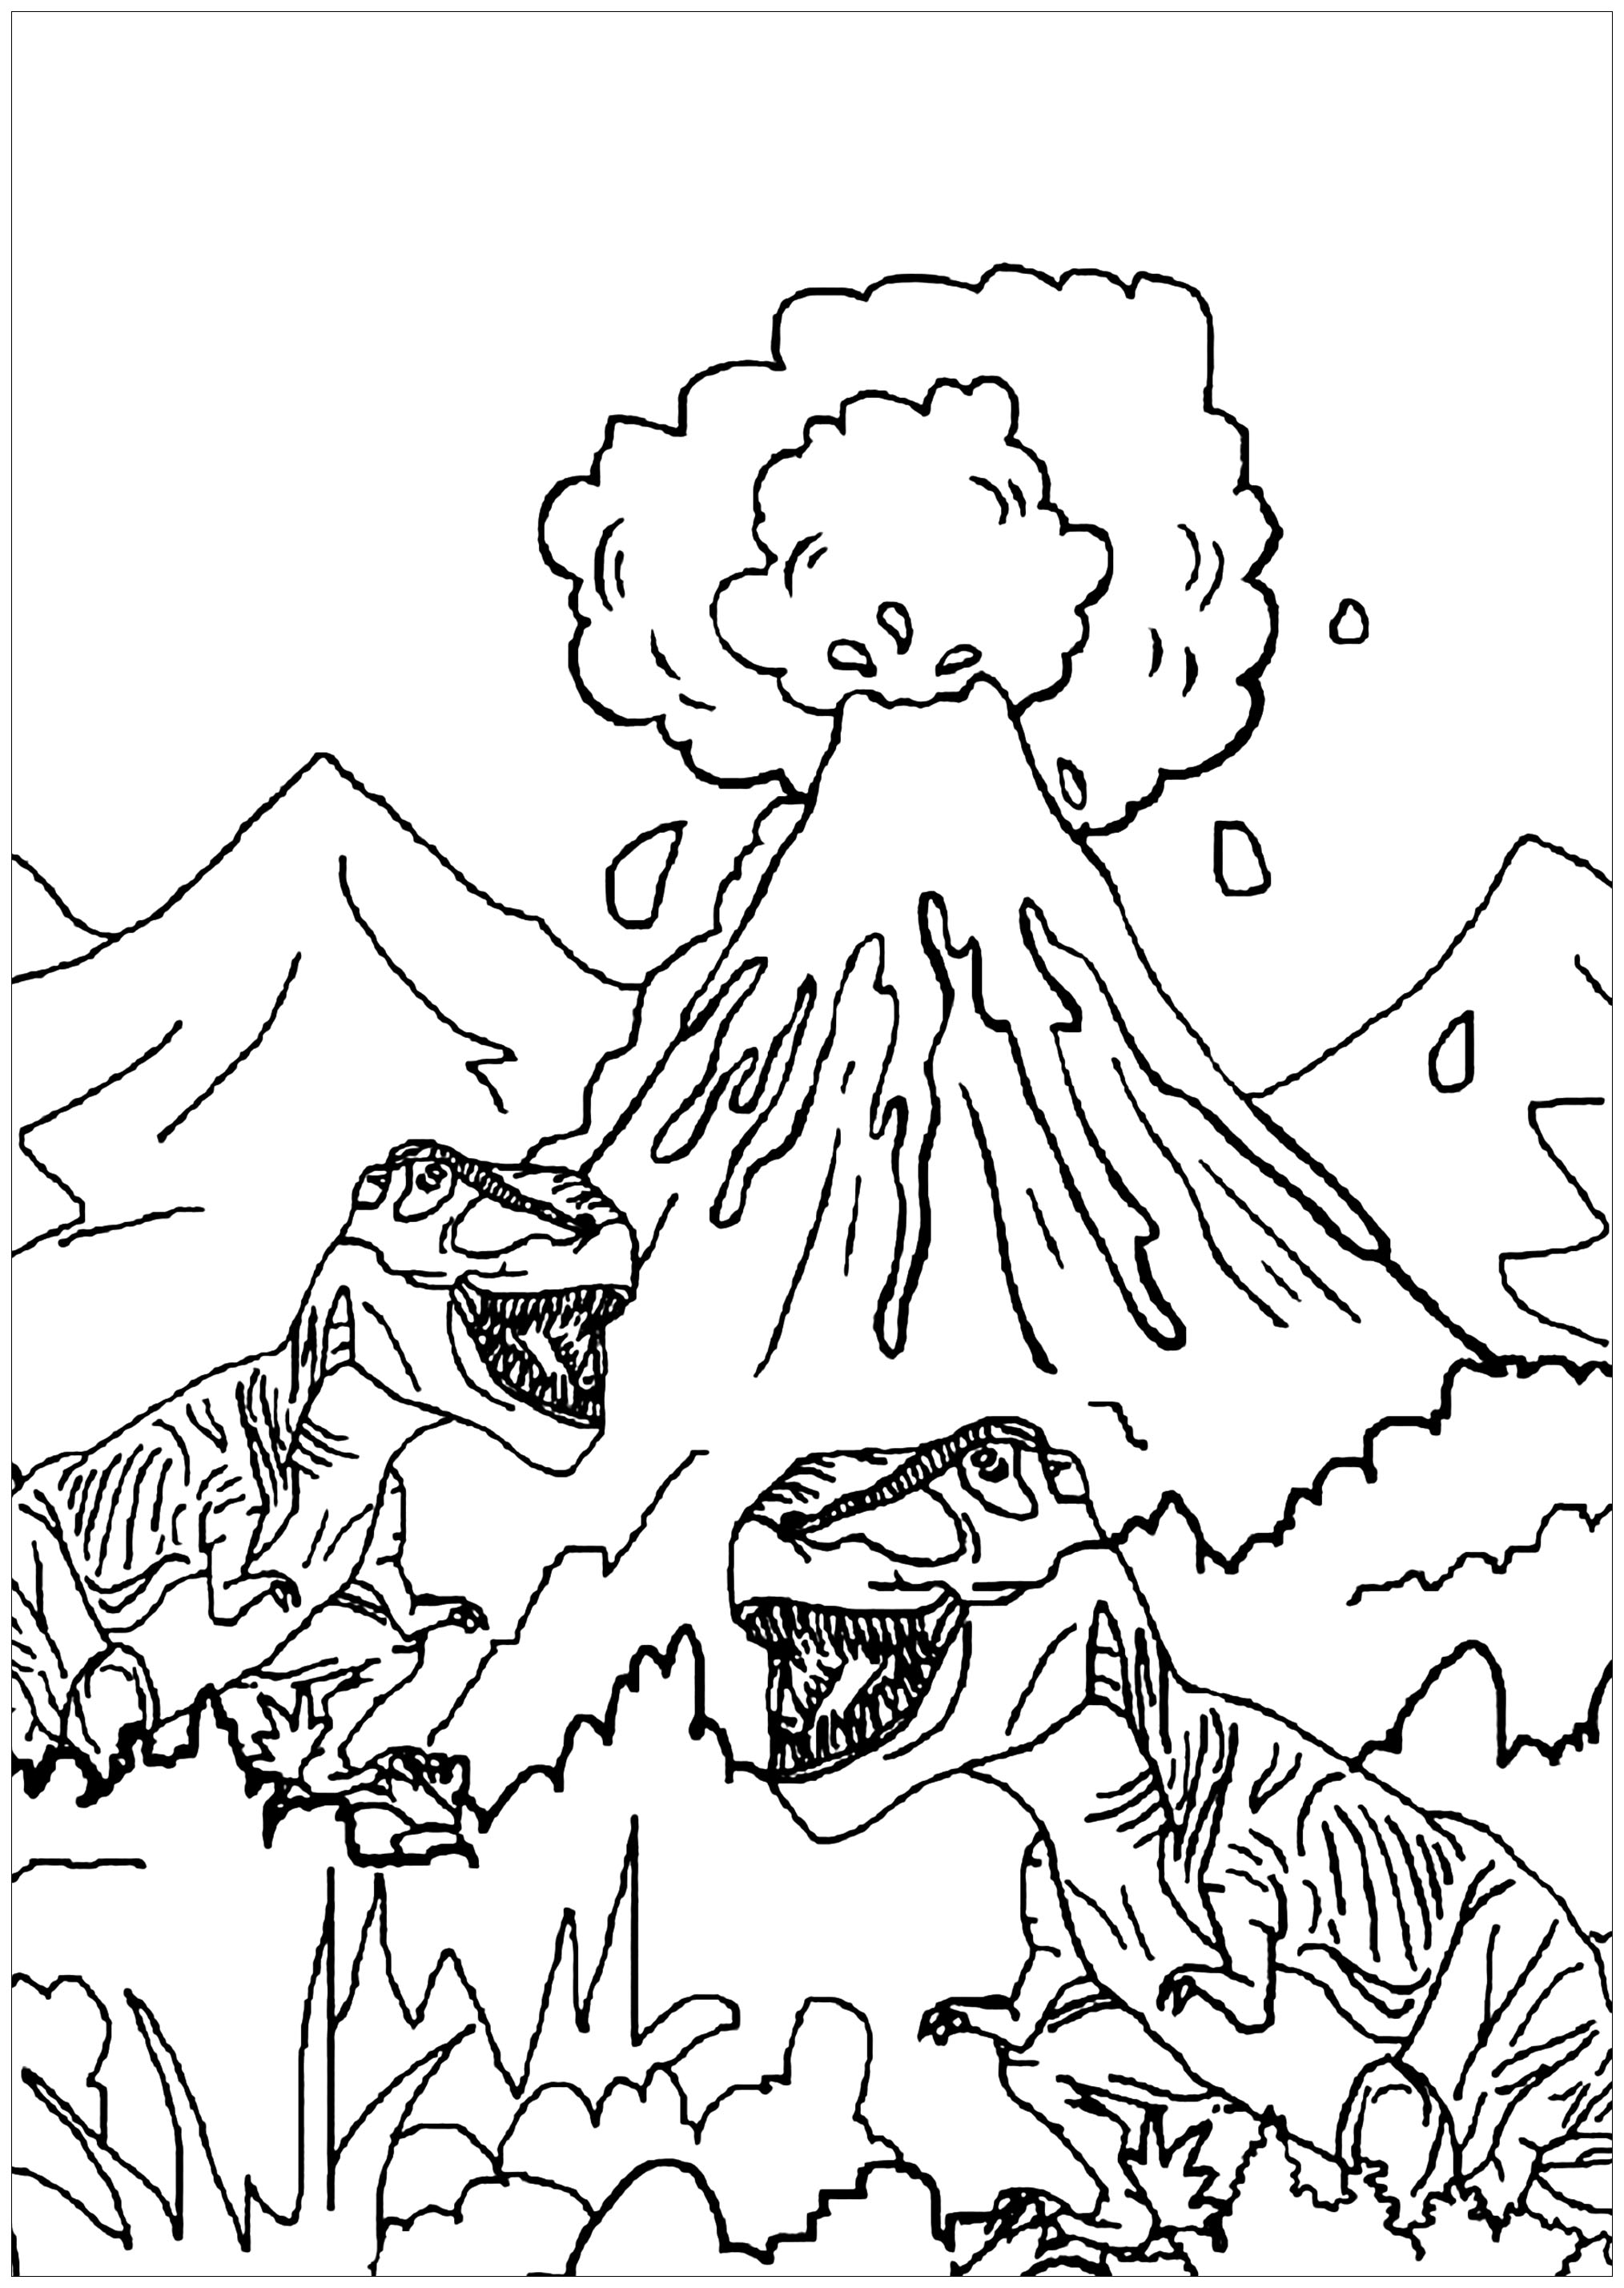 Dinosaurs to print for free - Dinosaurs Kids Coloring Pages